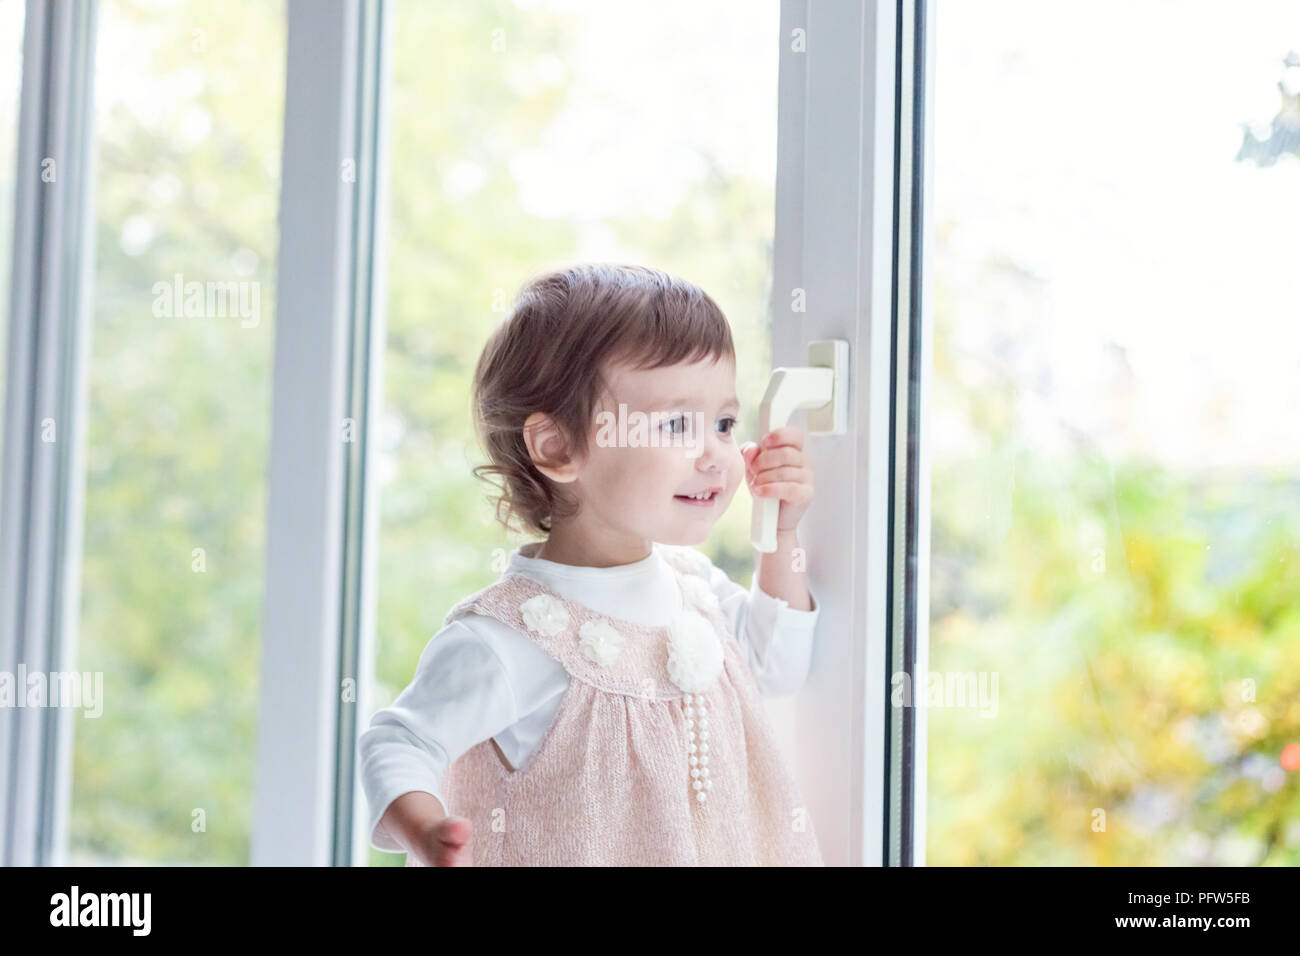 Cute Smiling Baby Girl Standing At Home Near Window Stock Photo